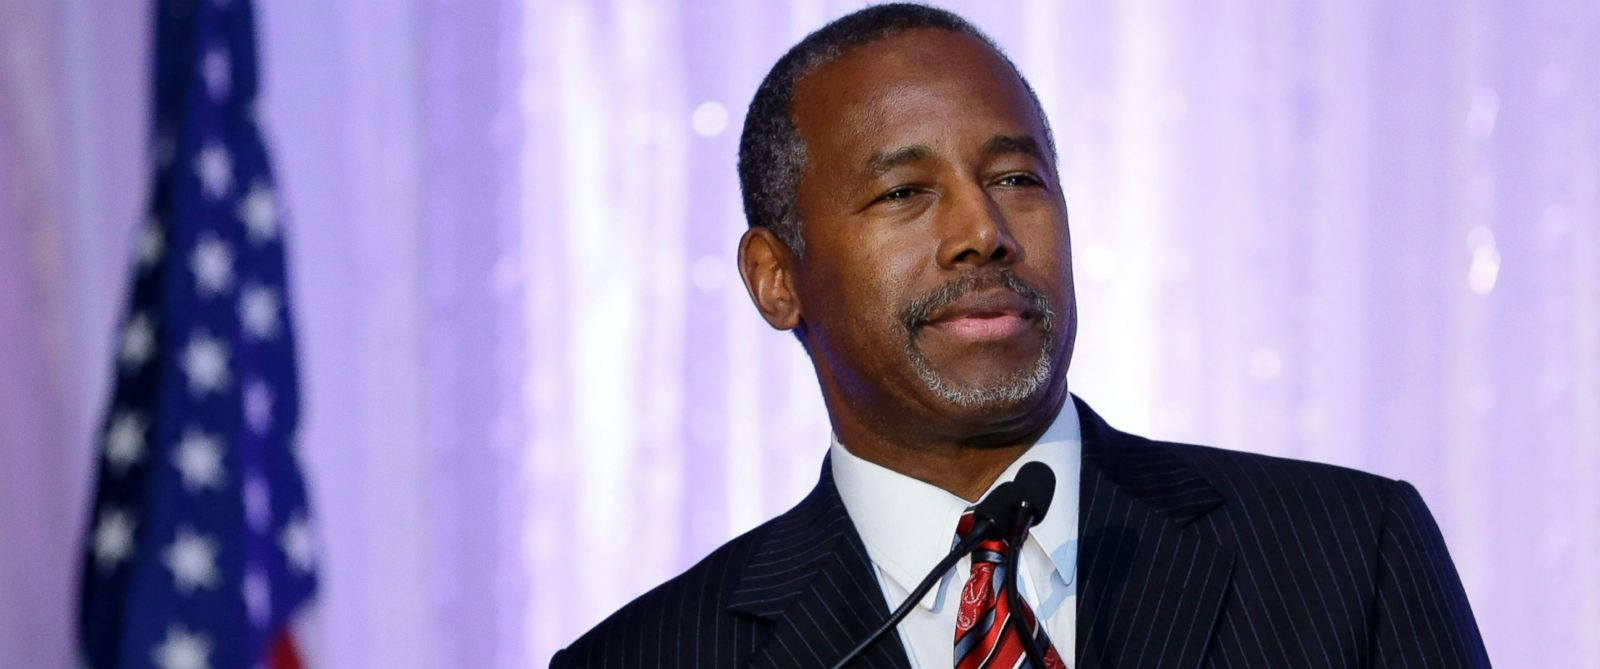 PHOTO: Republican presidential candidate Ben Carson speaks during the Black Republican Caucus of South Florida event benefiting the groups scholarship fund on Nov. 6, 2015, in Palm Beach Gardens, Fla.